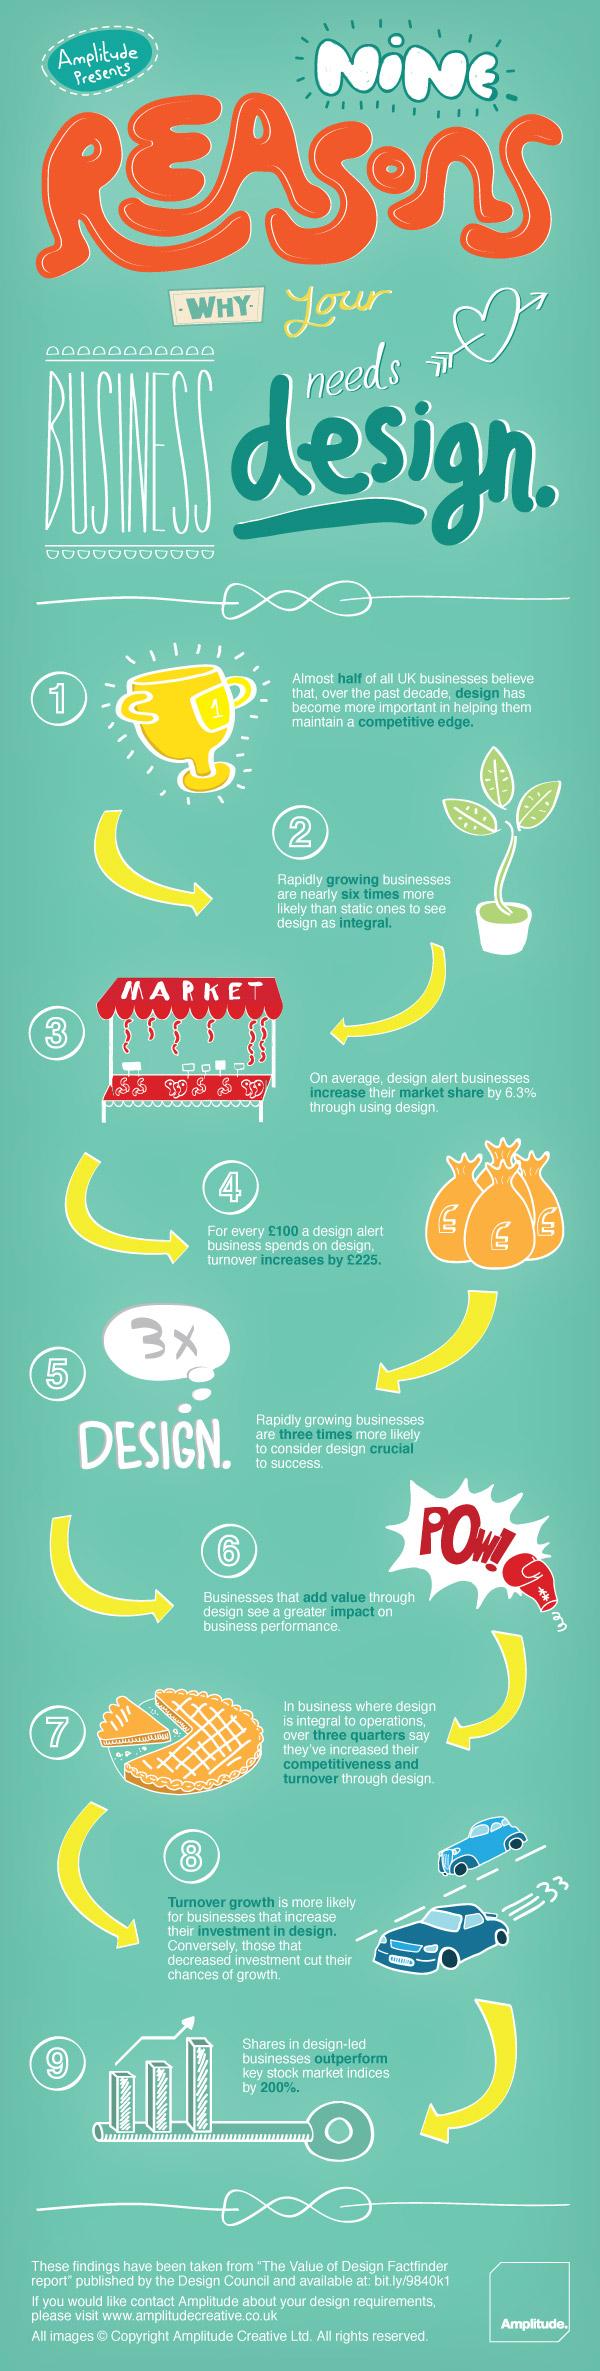 why_your_business_needs_design-infographic